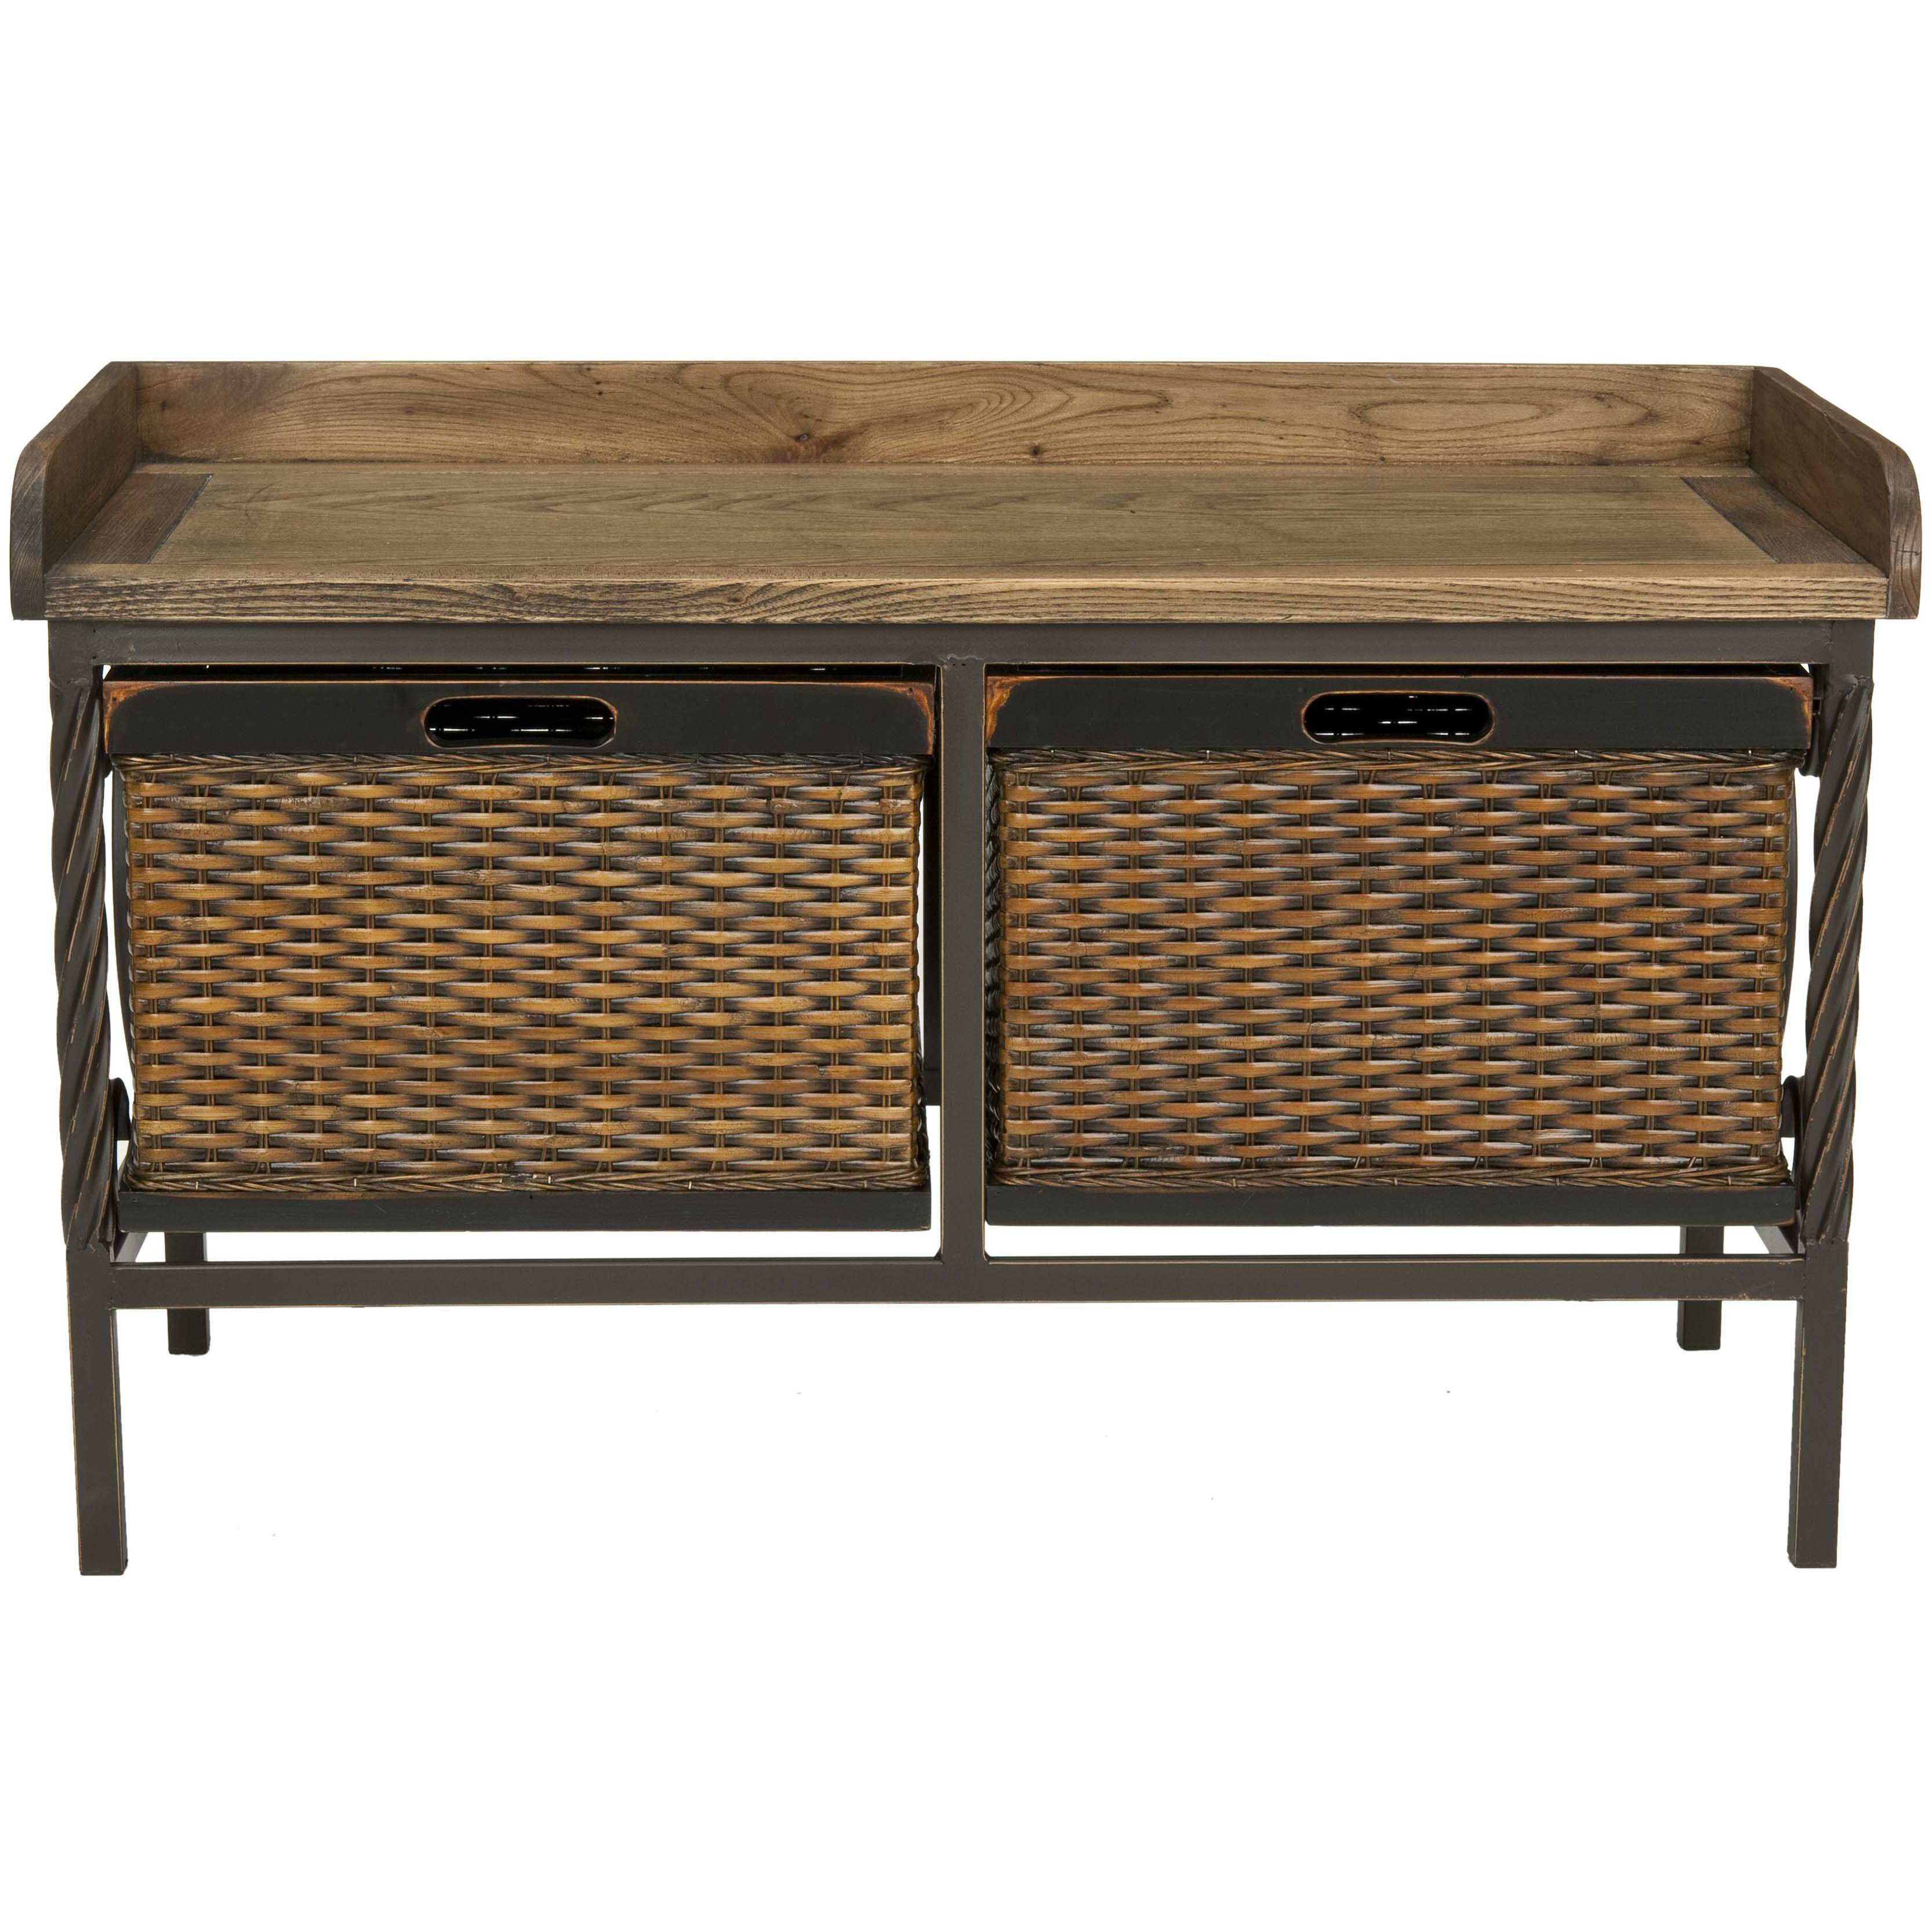 Safavieh Bergen Wood And Metal Storage Bench Reviews Wayfair